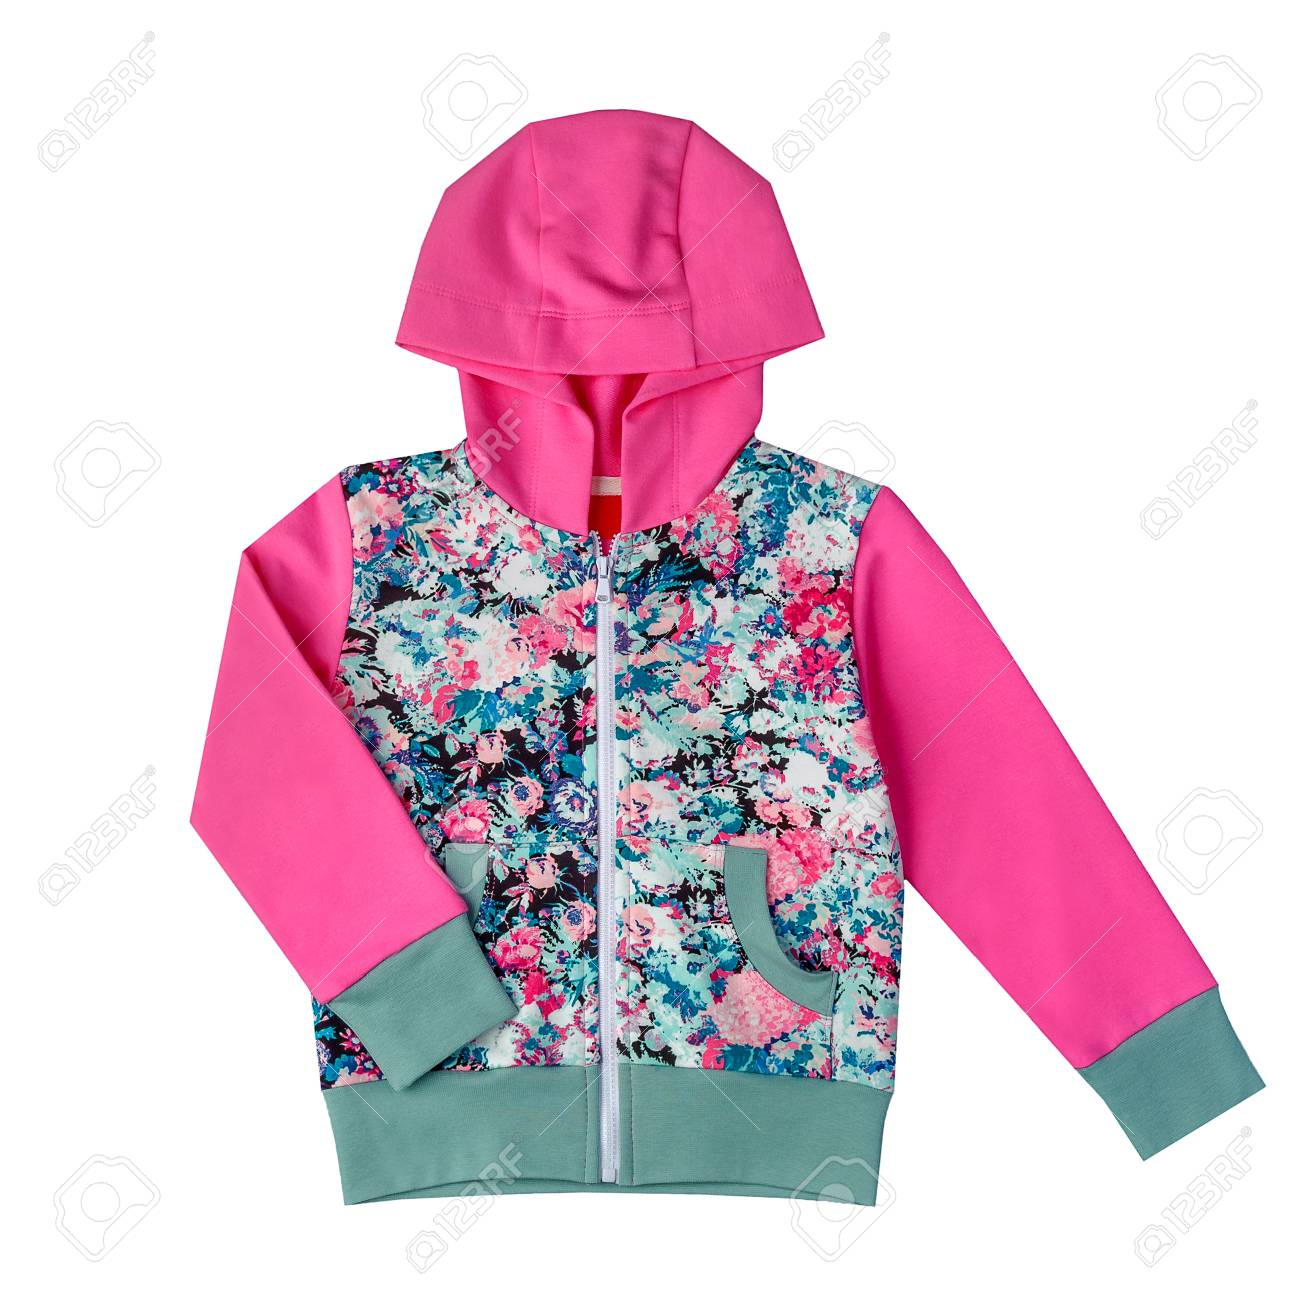 0331acaa3123 Children s Jacket With A Hood Of Pink Color Isolated On A White ...